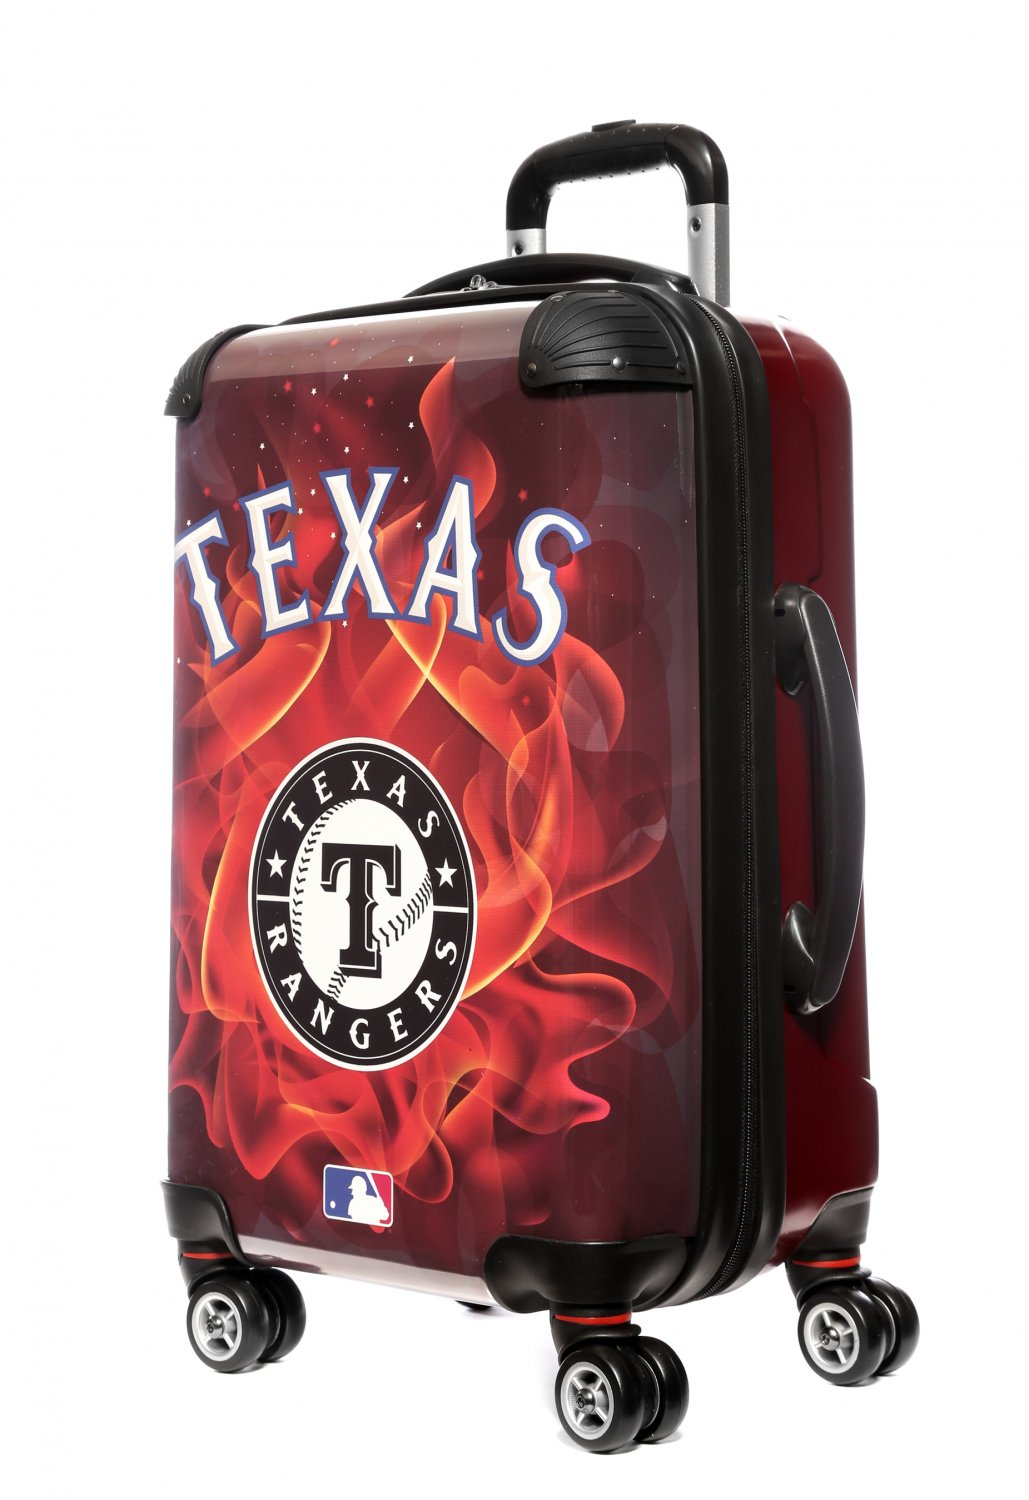 """Texas Rangers, 21"""" Clear Poly Carry-On Luggage by Kaybull #TEX15"""